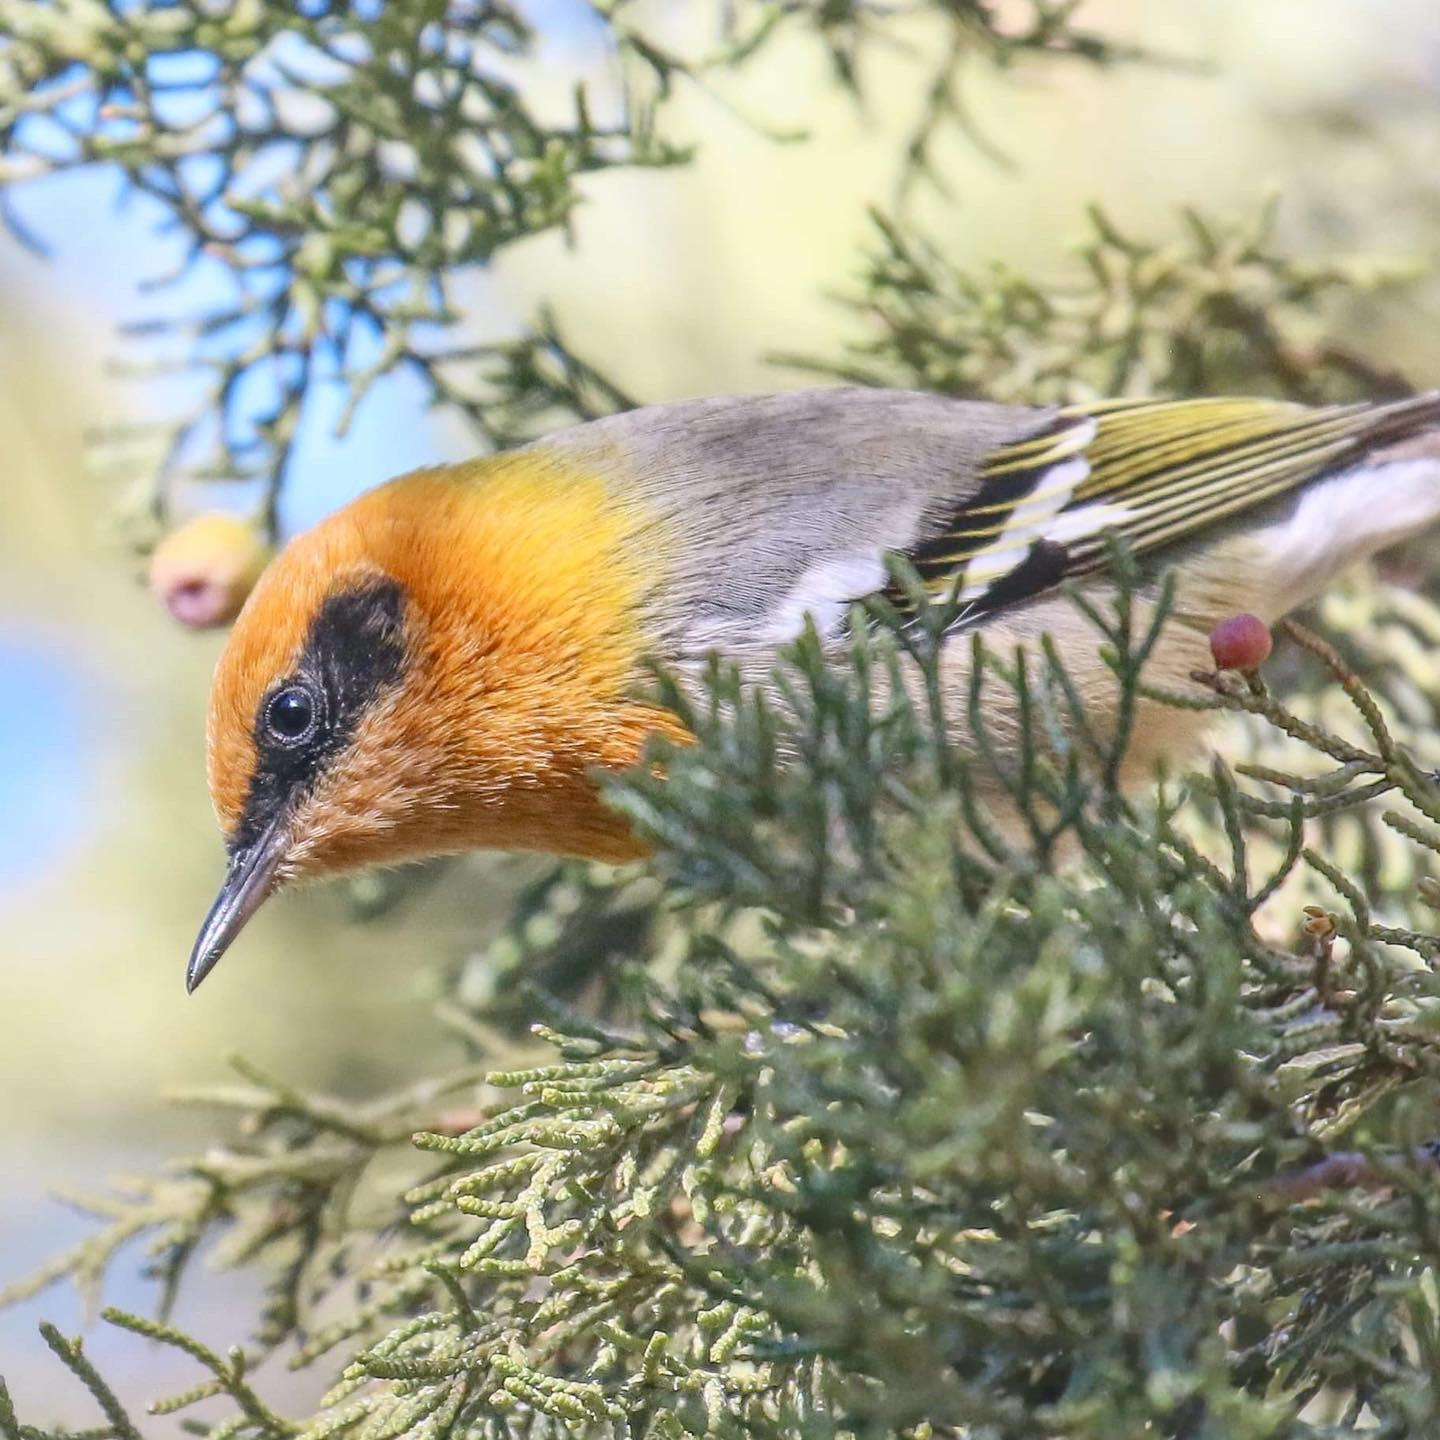 Olive Warbler Photo by Tom Ford-Hutchinson